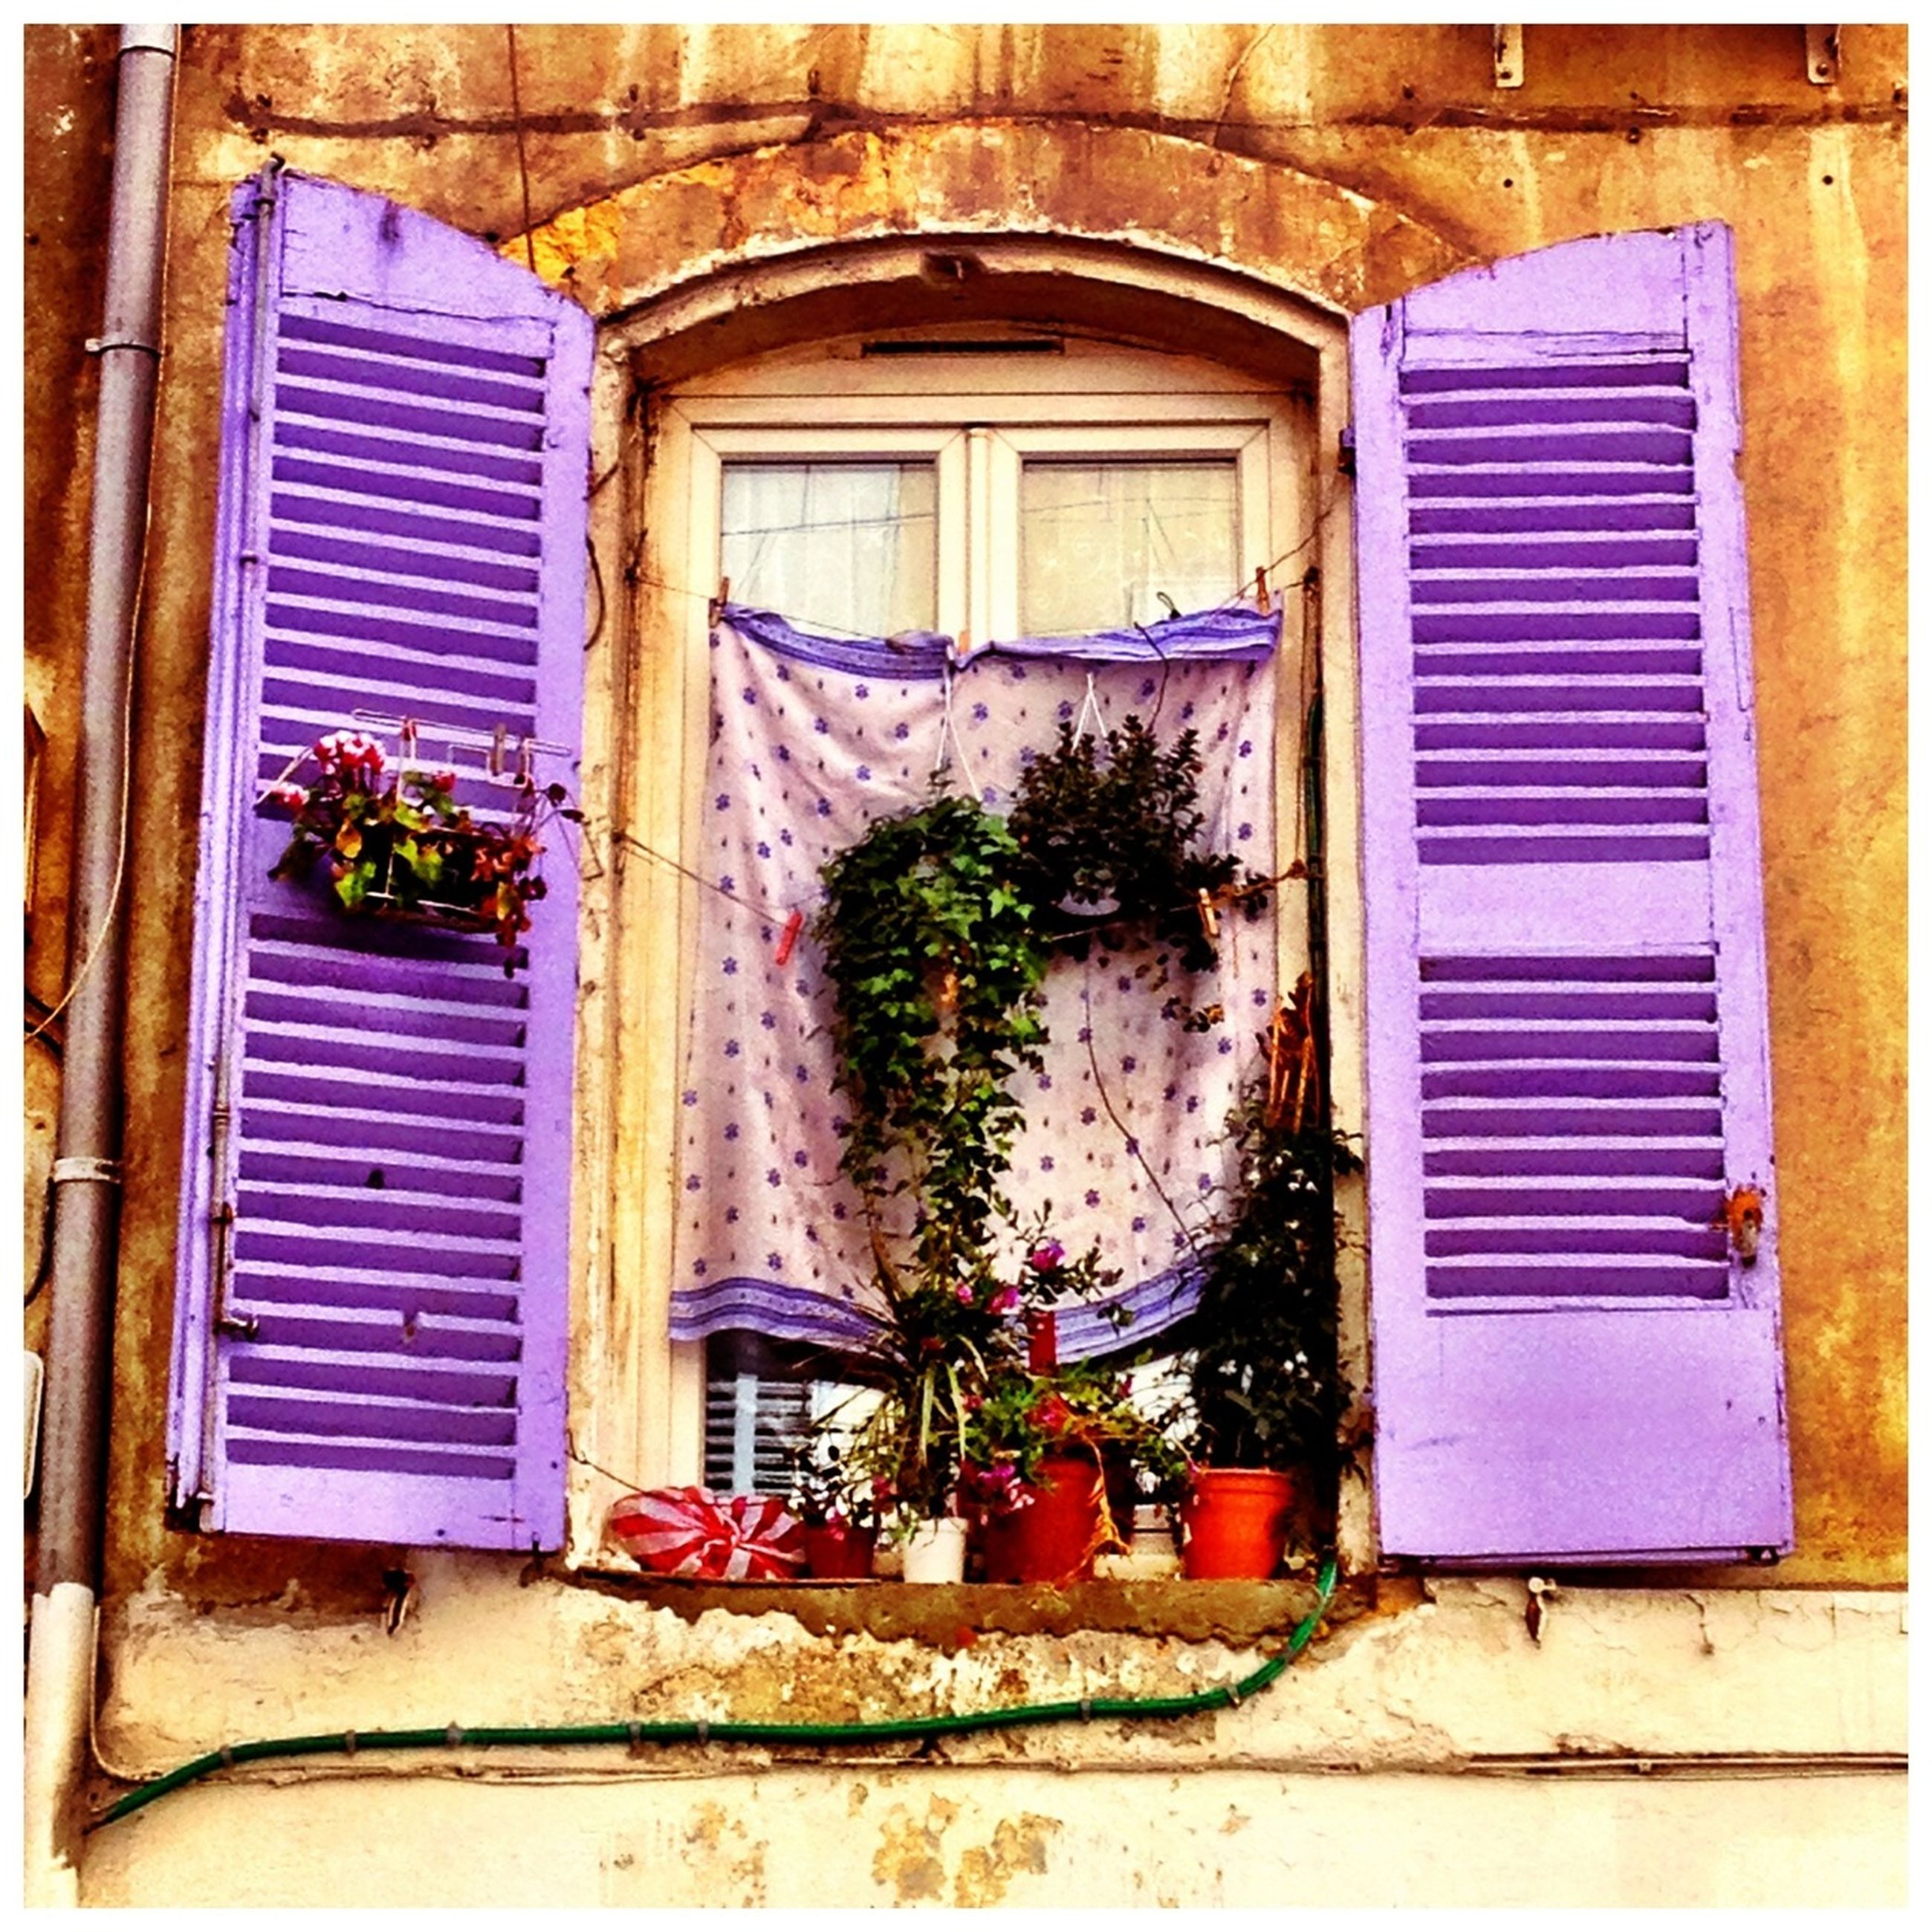 window, building exterior, architecture, built structure, house, plant, growth, potted plant, flower, door, residential structure, closed, blue, window sill, day, residential building, outdoors, low angle view, flower pot, no people